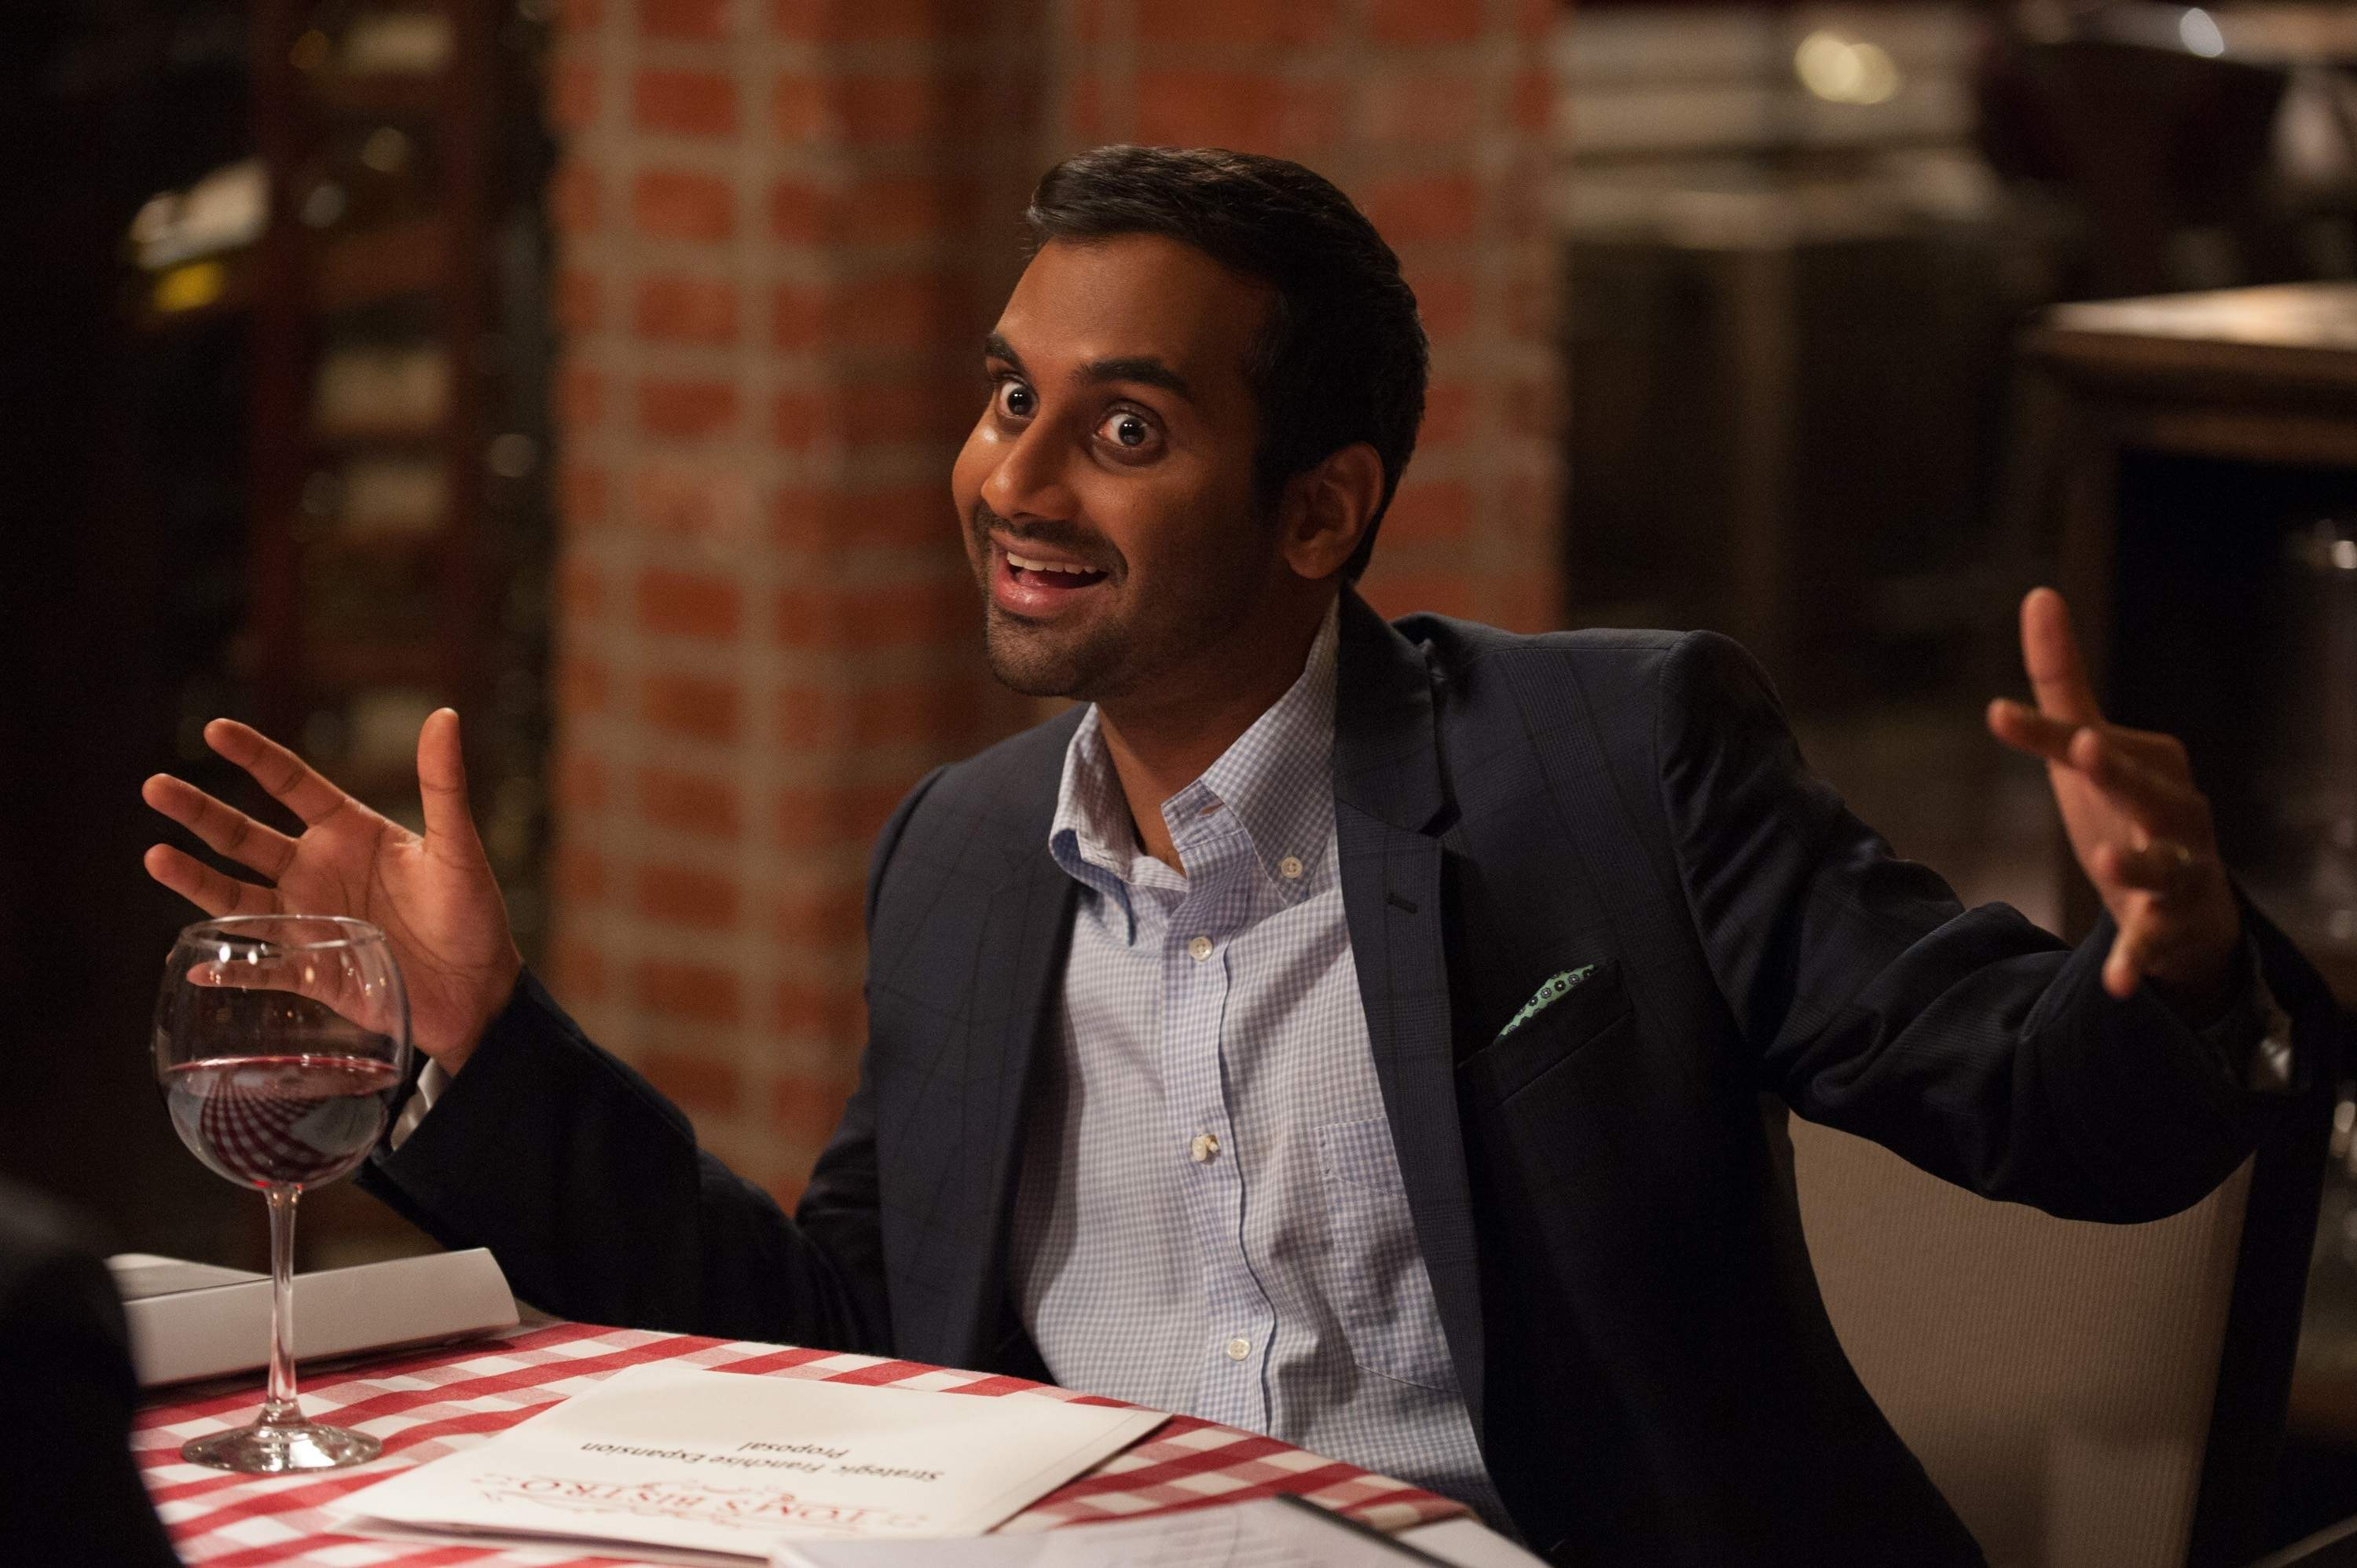 Watch: Aziz Ansari shares the first trailer for Master of None Season 2 Download Netflix Torrent